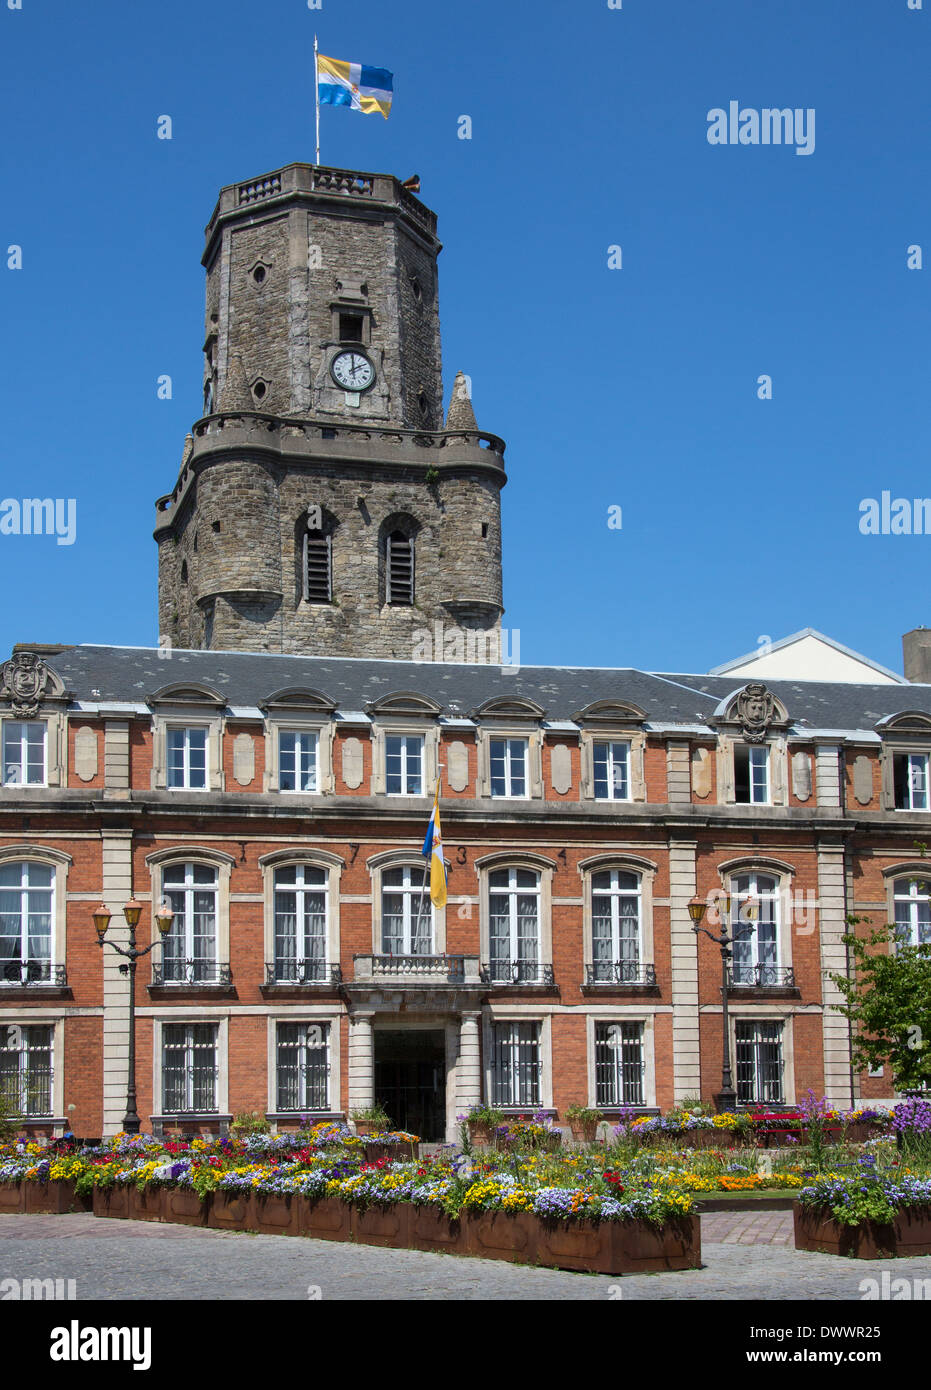 The Palace de la Resistance and the Belfry in the coastal town of Boulogne-sur-Mer in the Nord Pas-de-Calais region of France - Stock Image